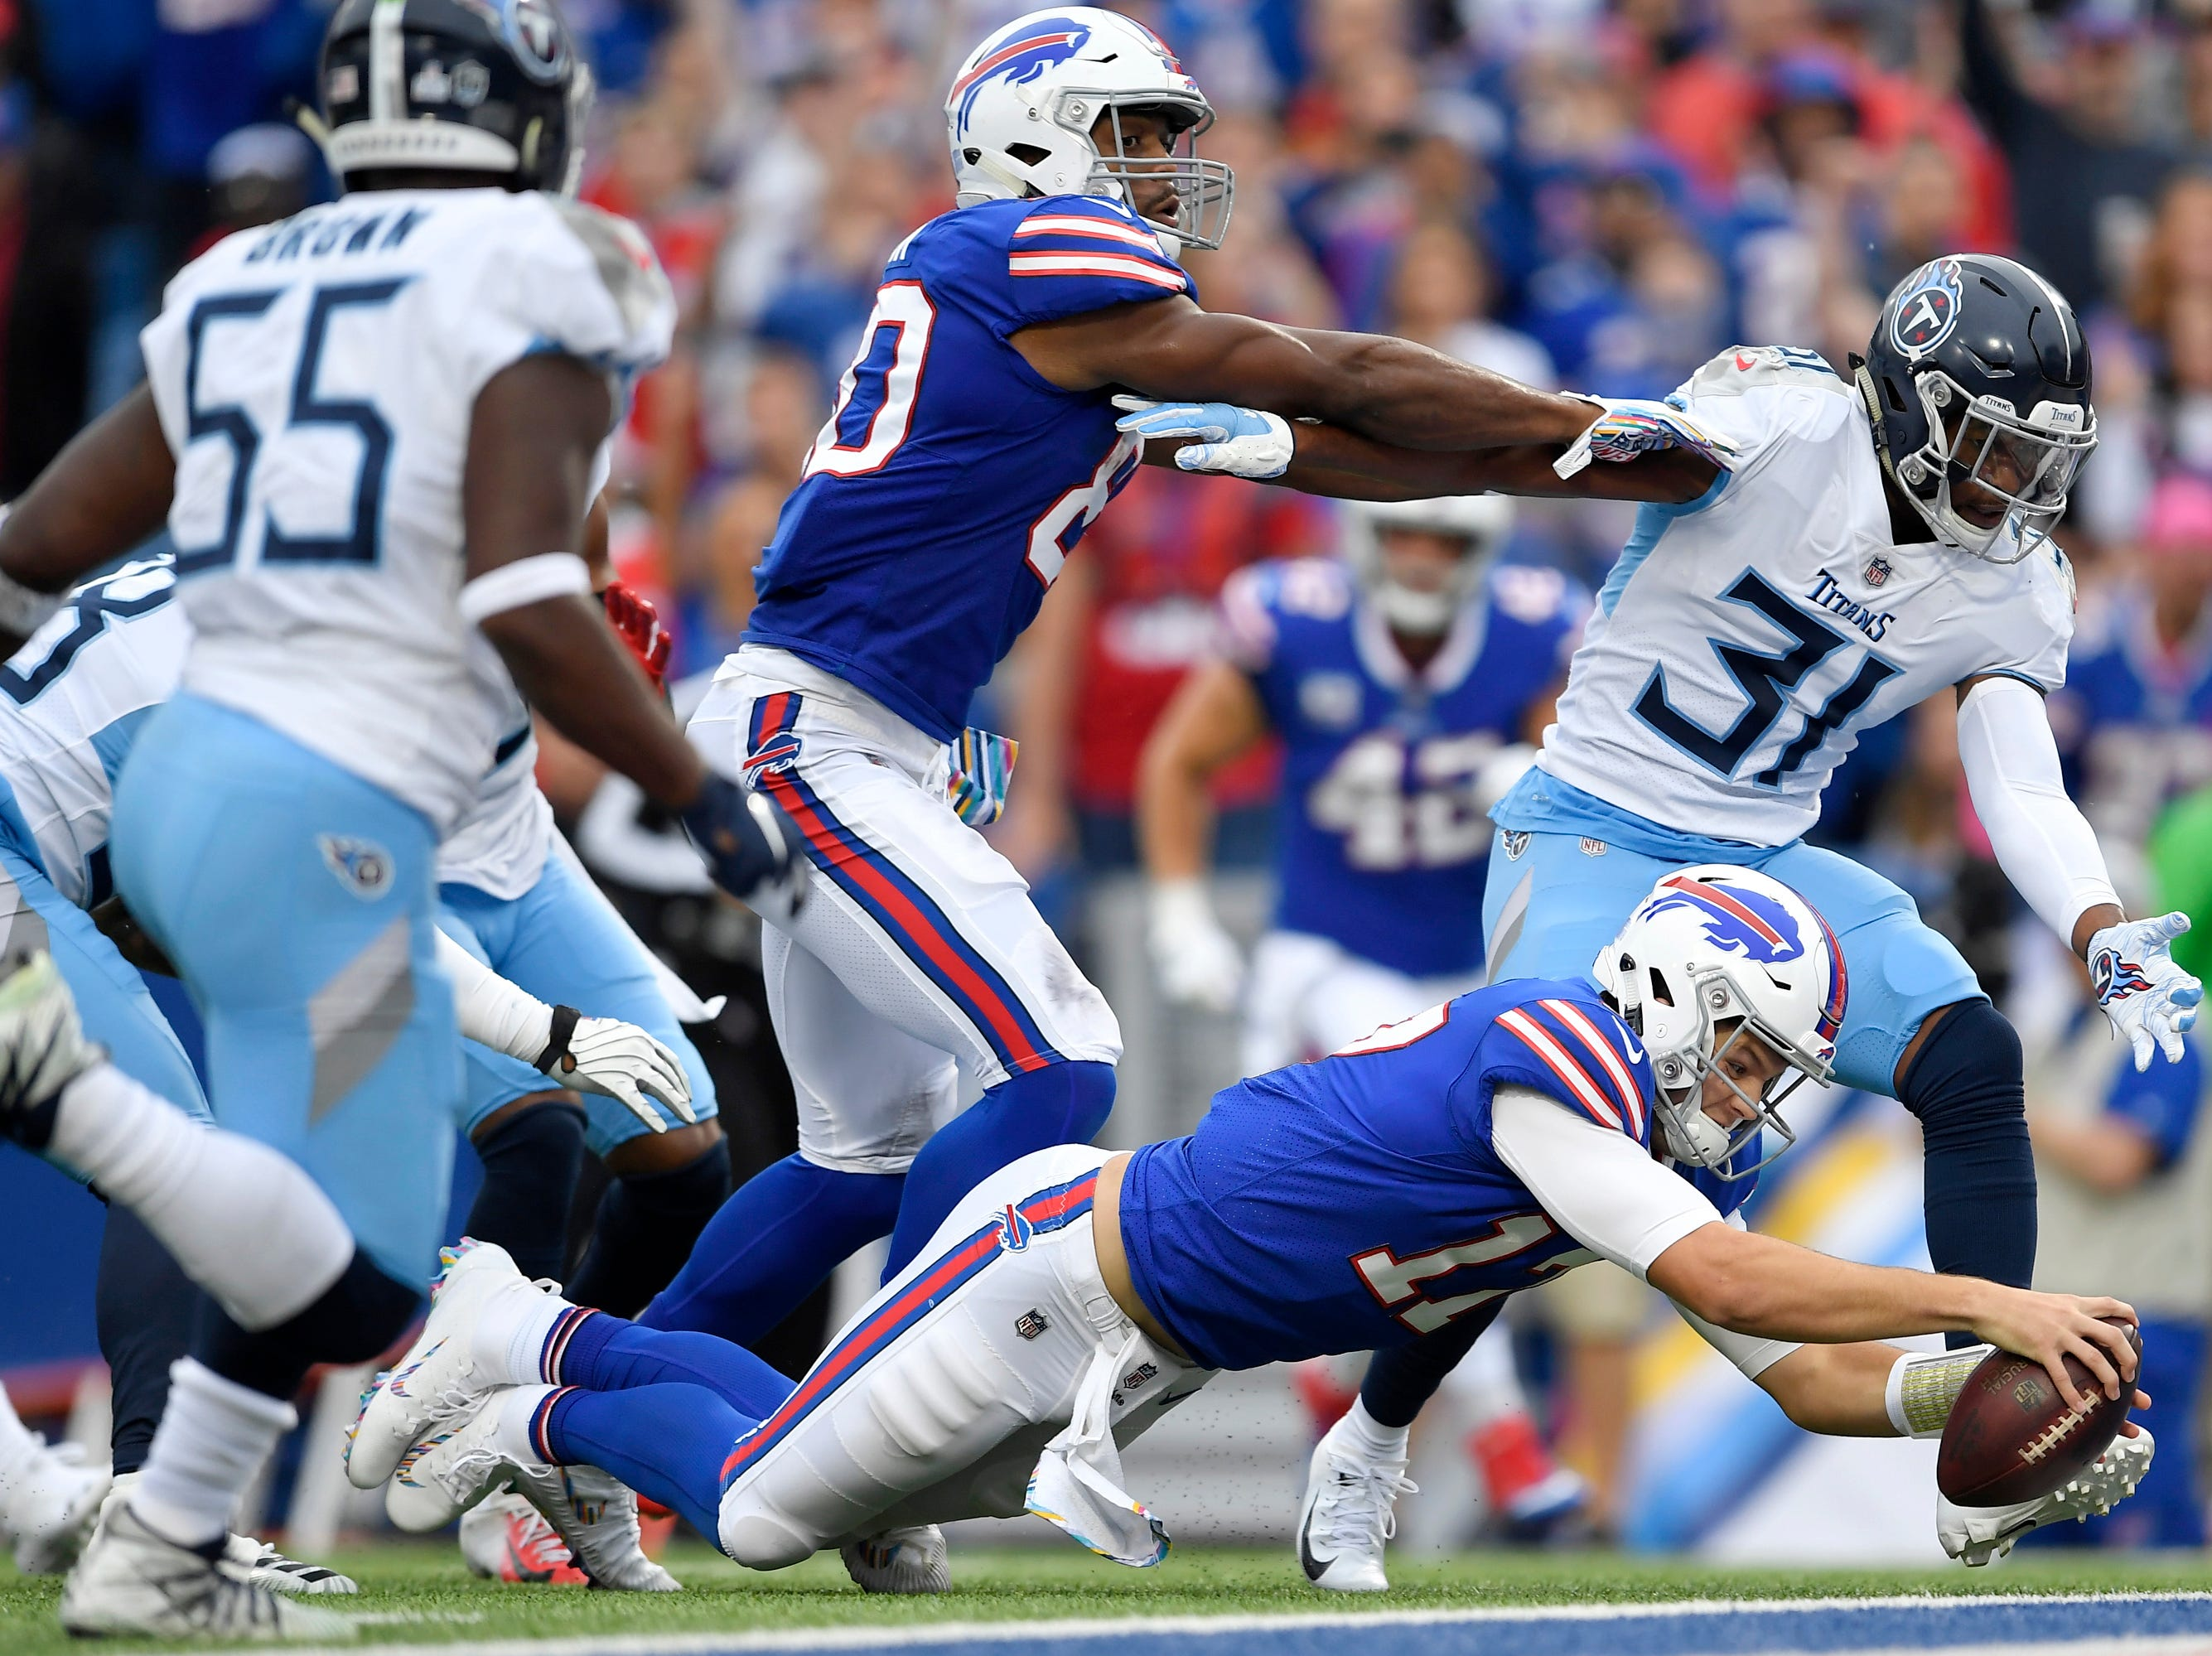 Buffalo Bills quarterback Josh Allen (17) dives in for a touchdown run against the Tennessee Titans during the first half of an NFL football game, Sunday, Oct. 7, 2018, in Orchard Park, N.Y.